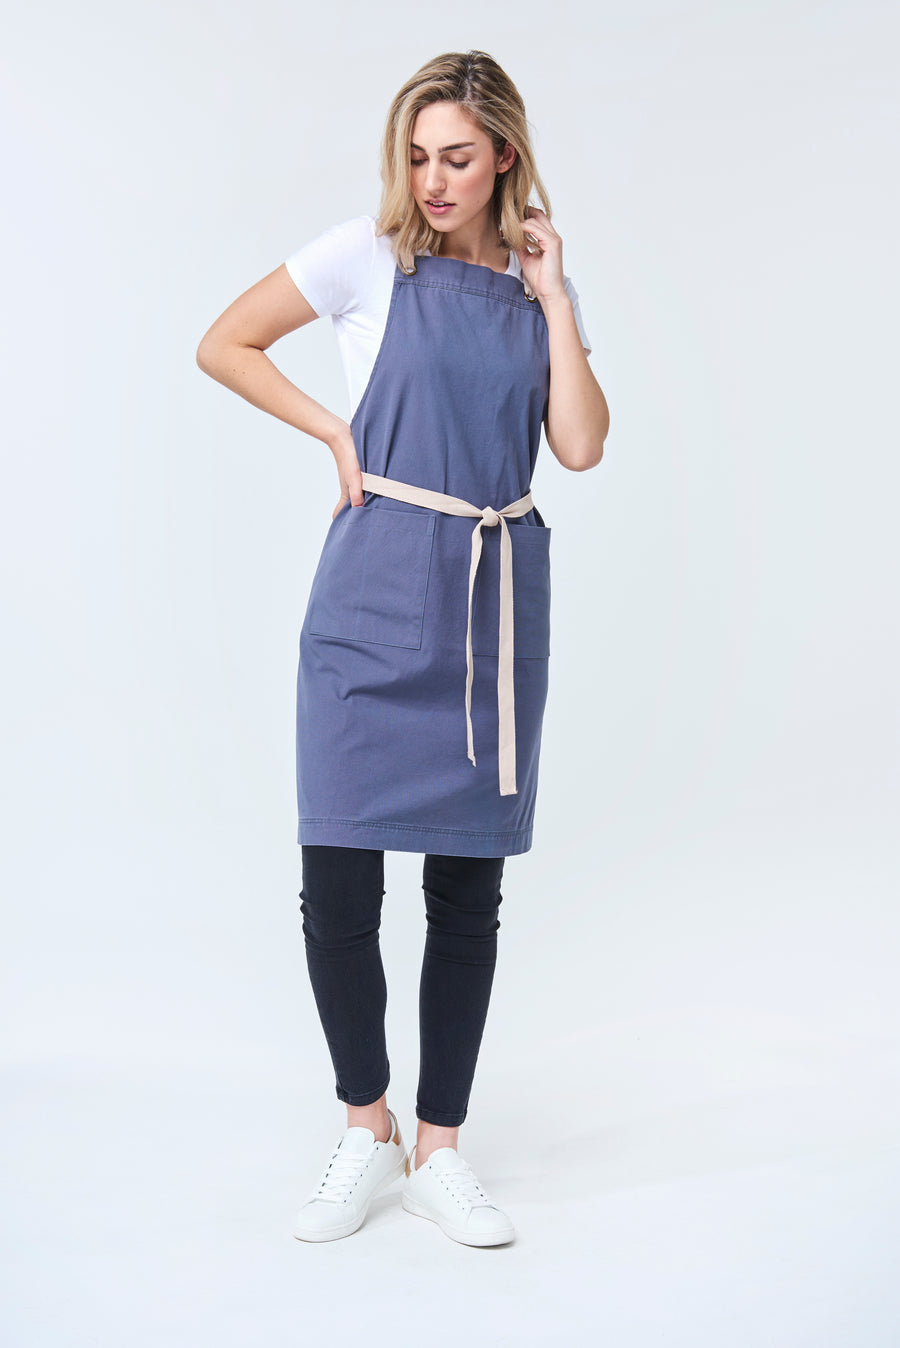 PRE ORDER ARCHIE Apron with textured tape straps - Stormi Canvas